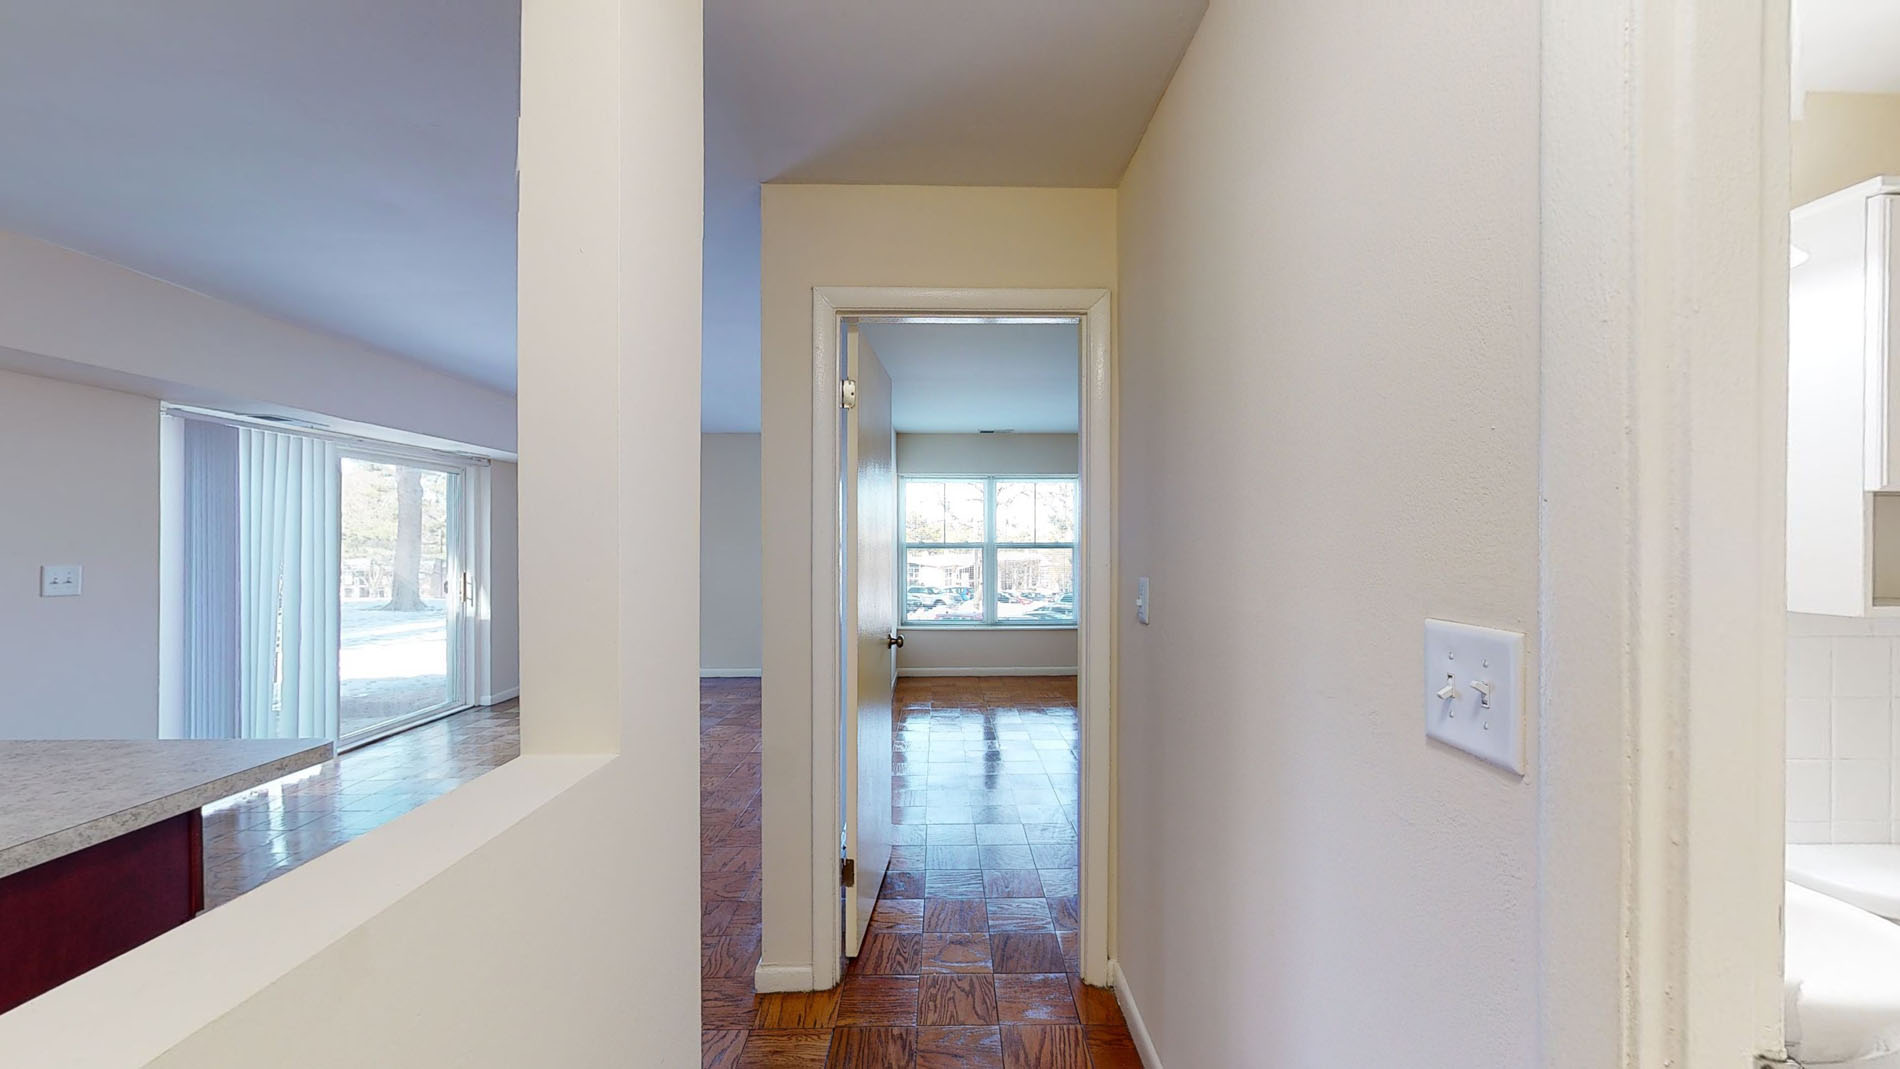 1 Bed, 1 Bath apartment in Norwood for $1,630